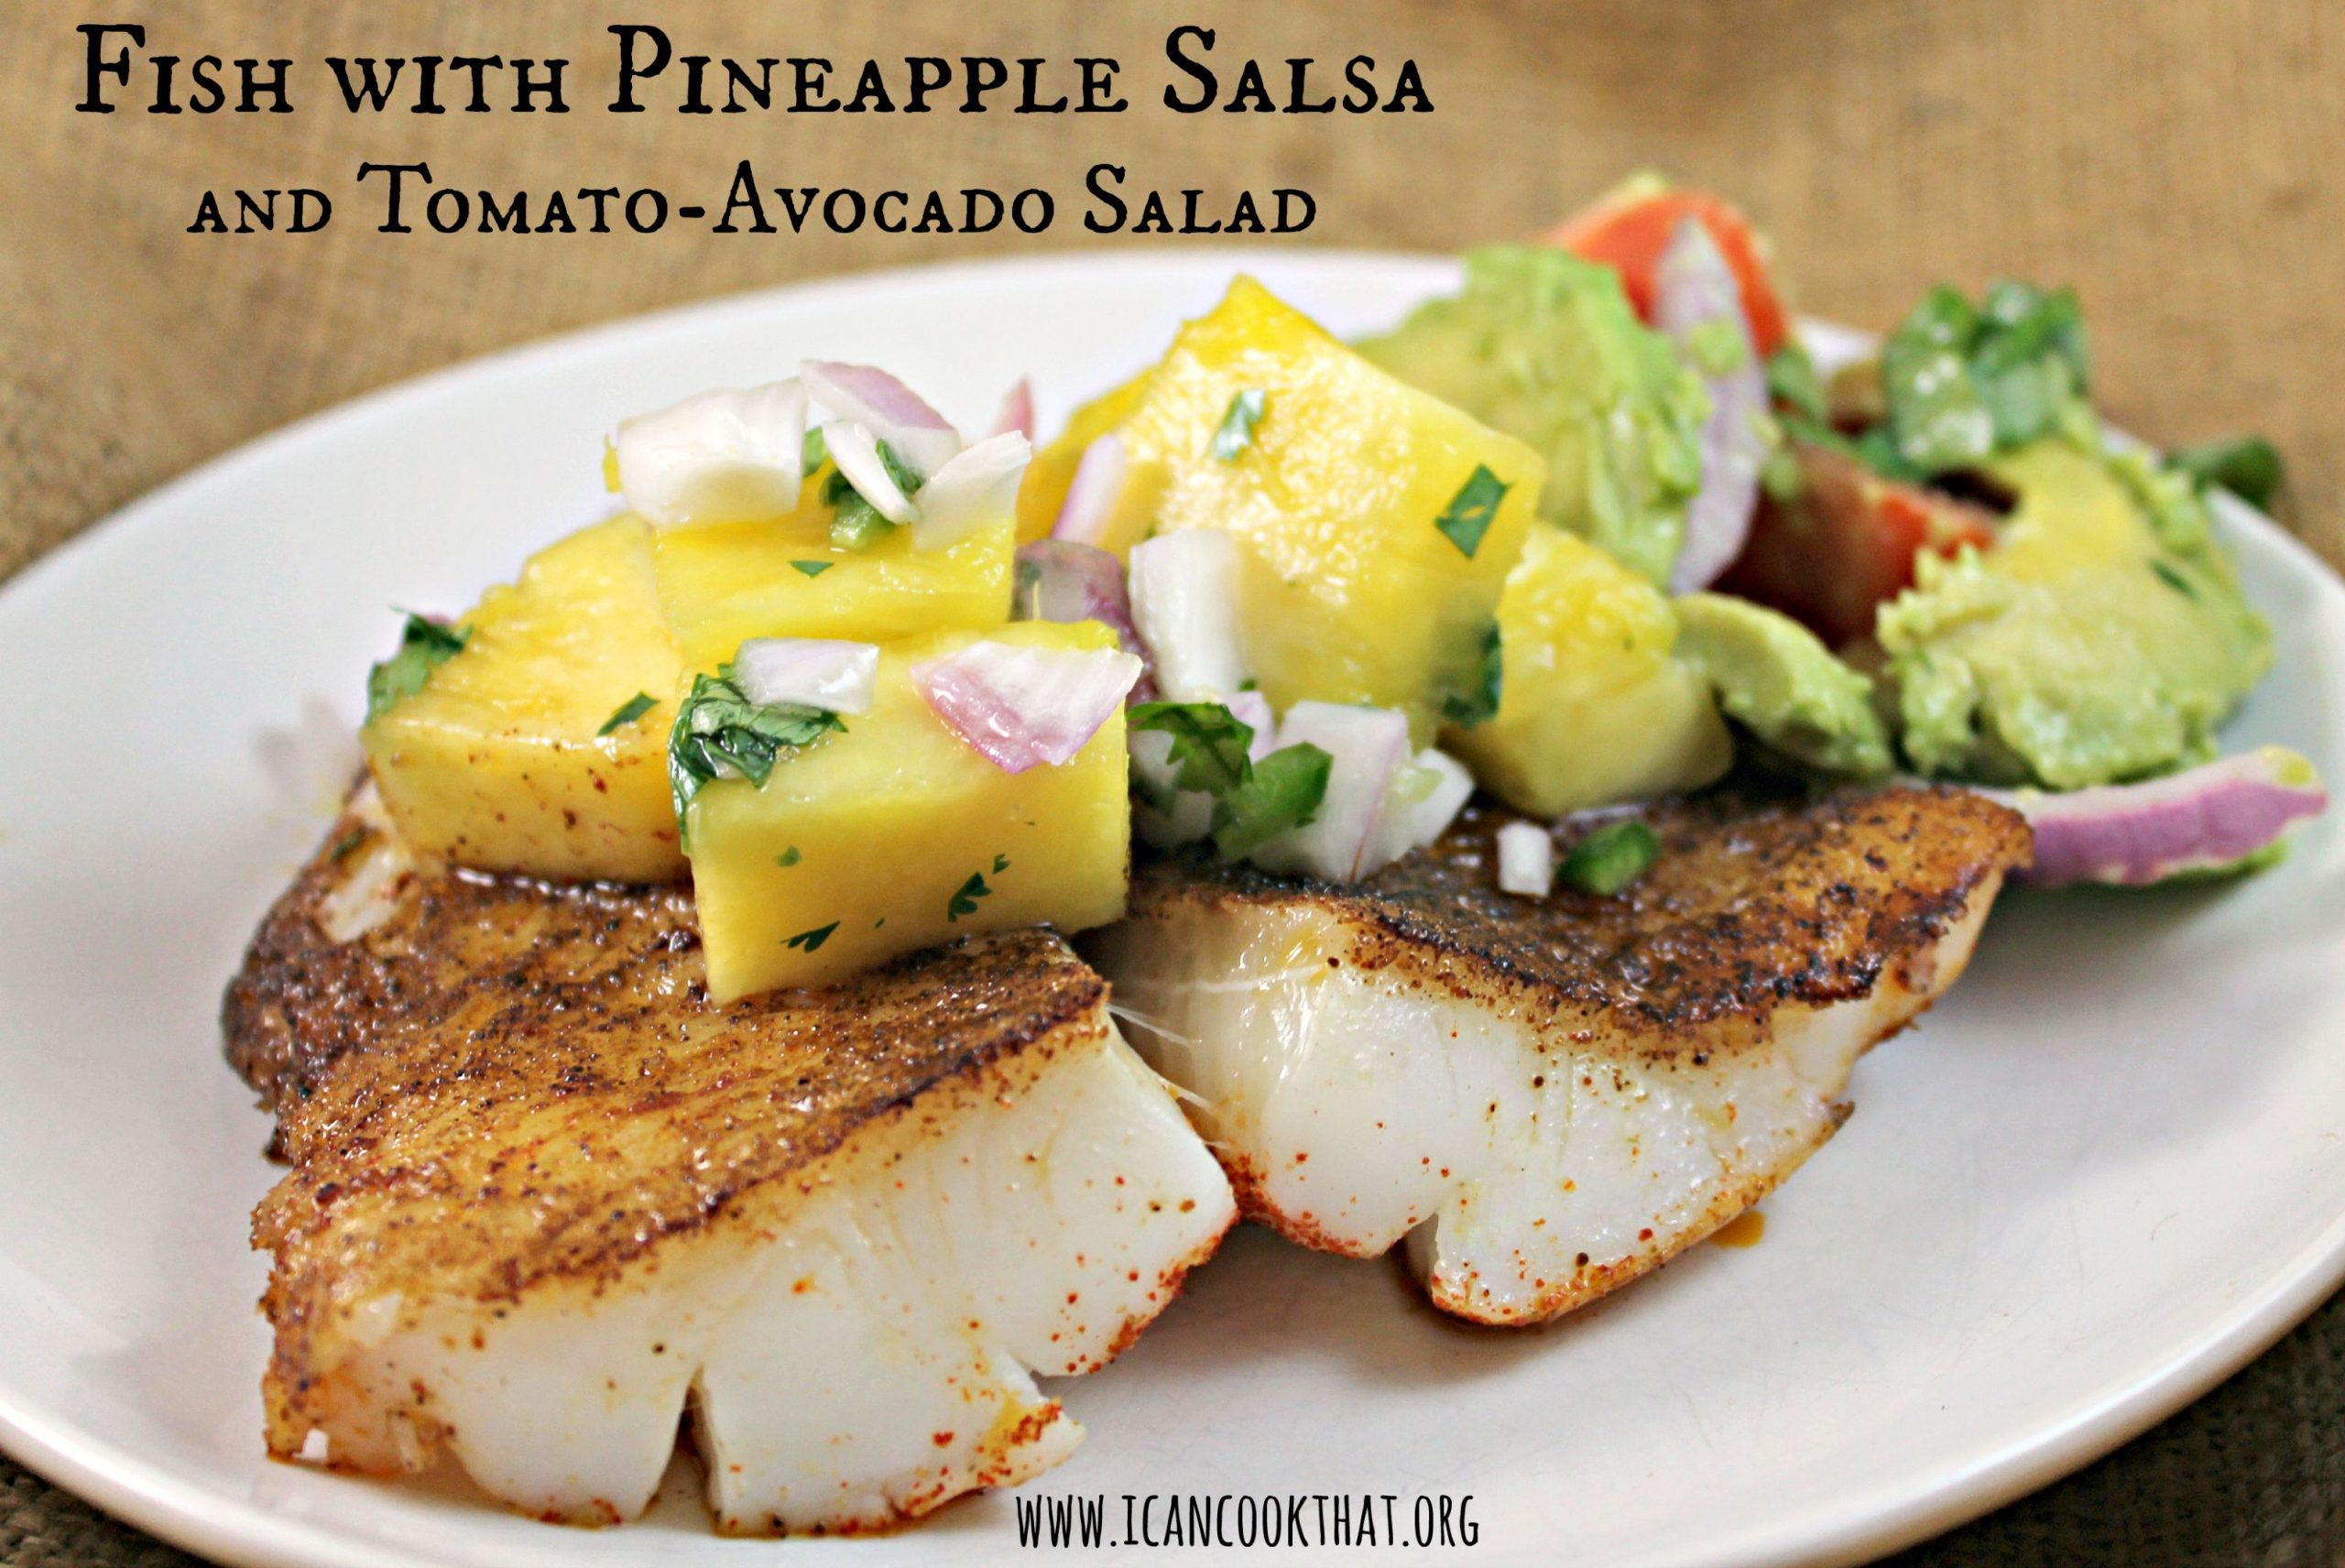 Fish with Pineapple Salsa and Tomato-Avocado Salad - Recipe Fish With Pineapple